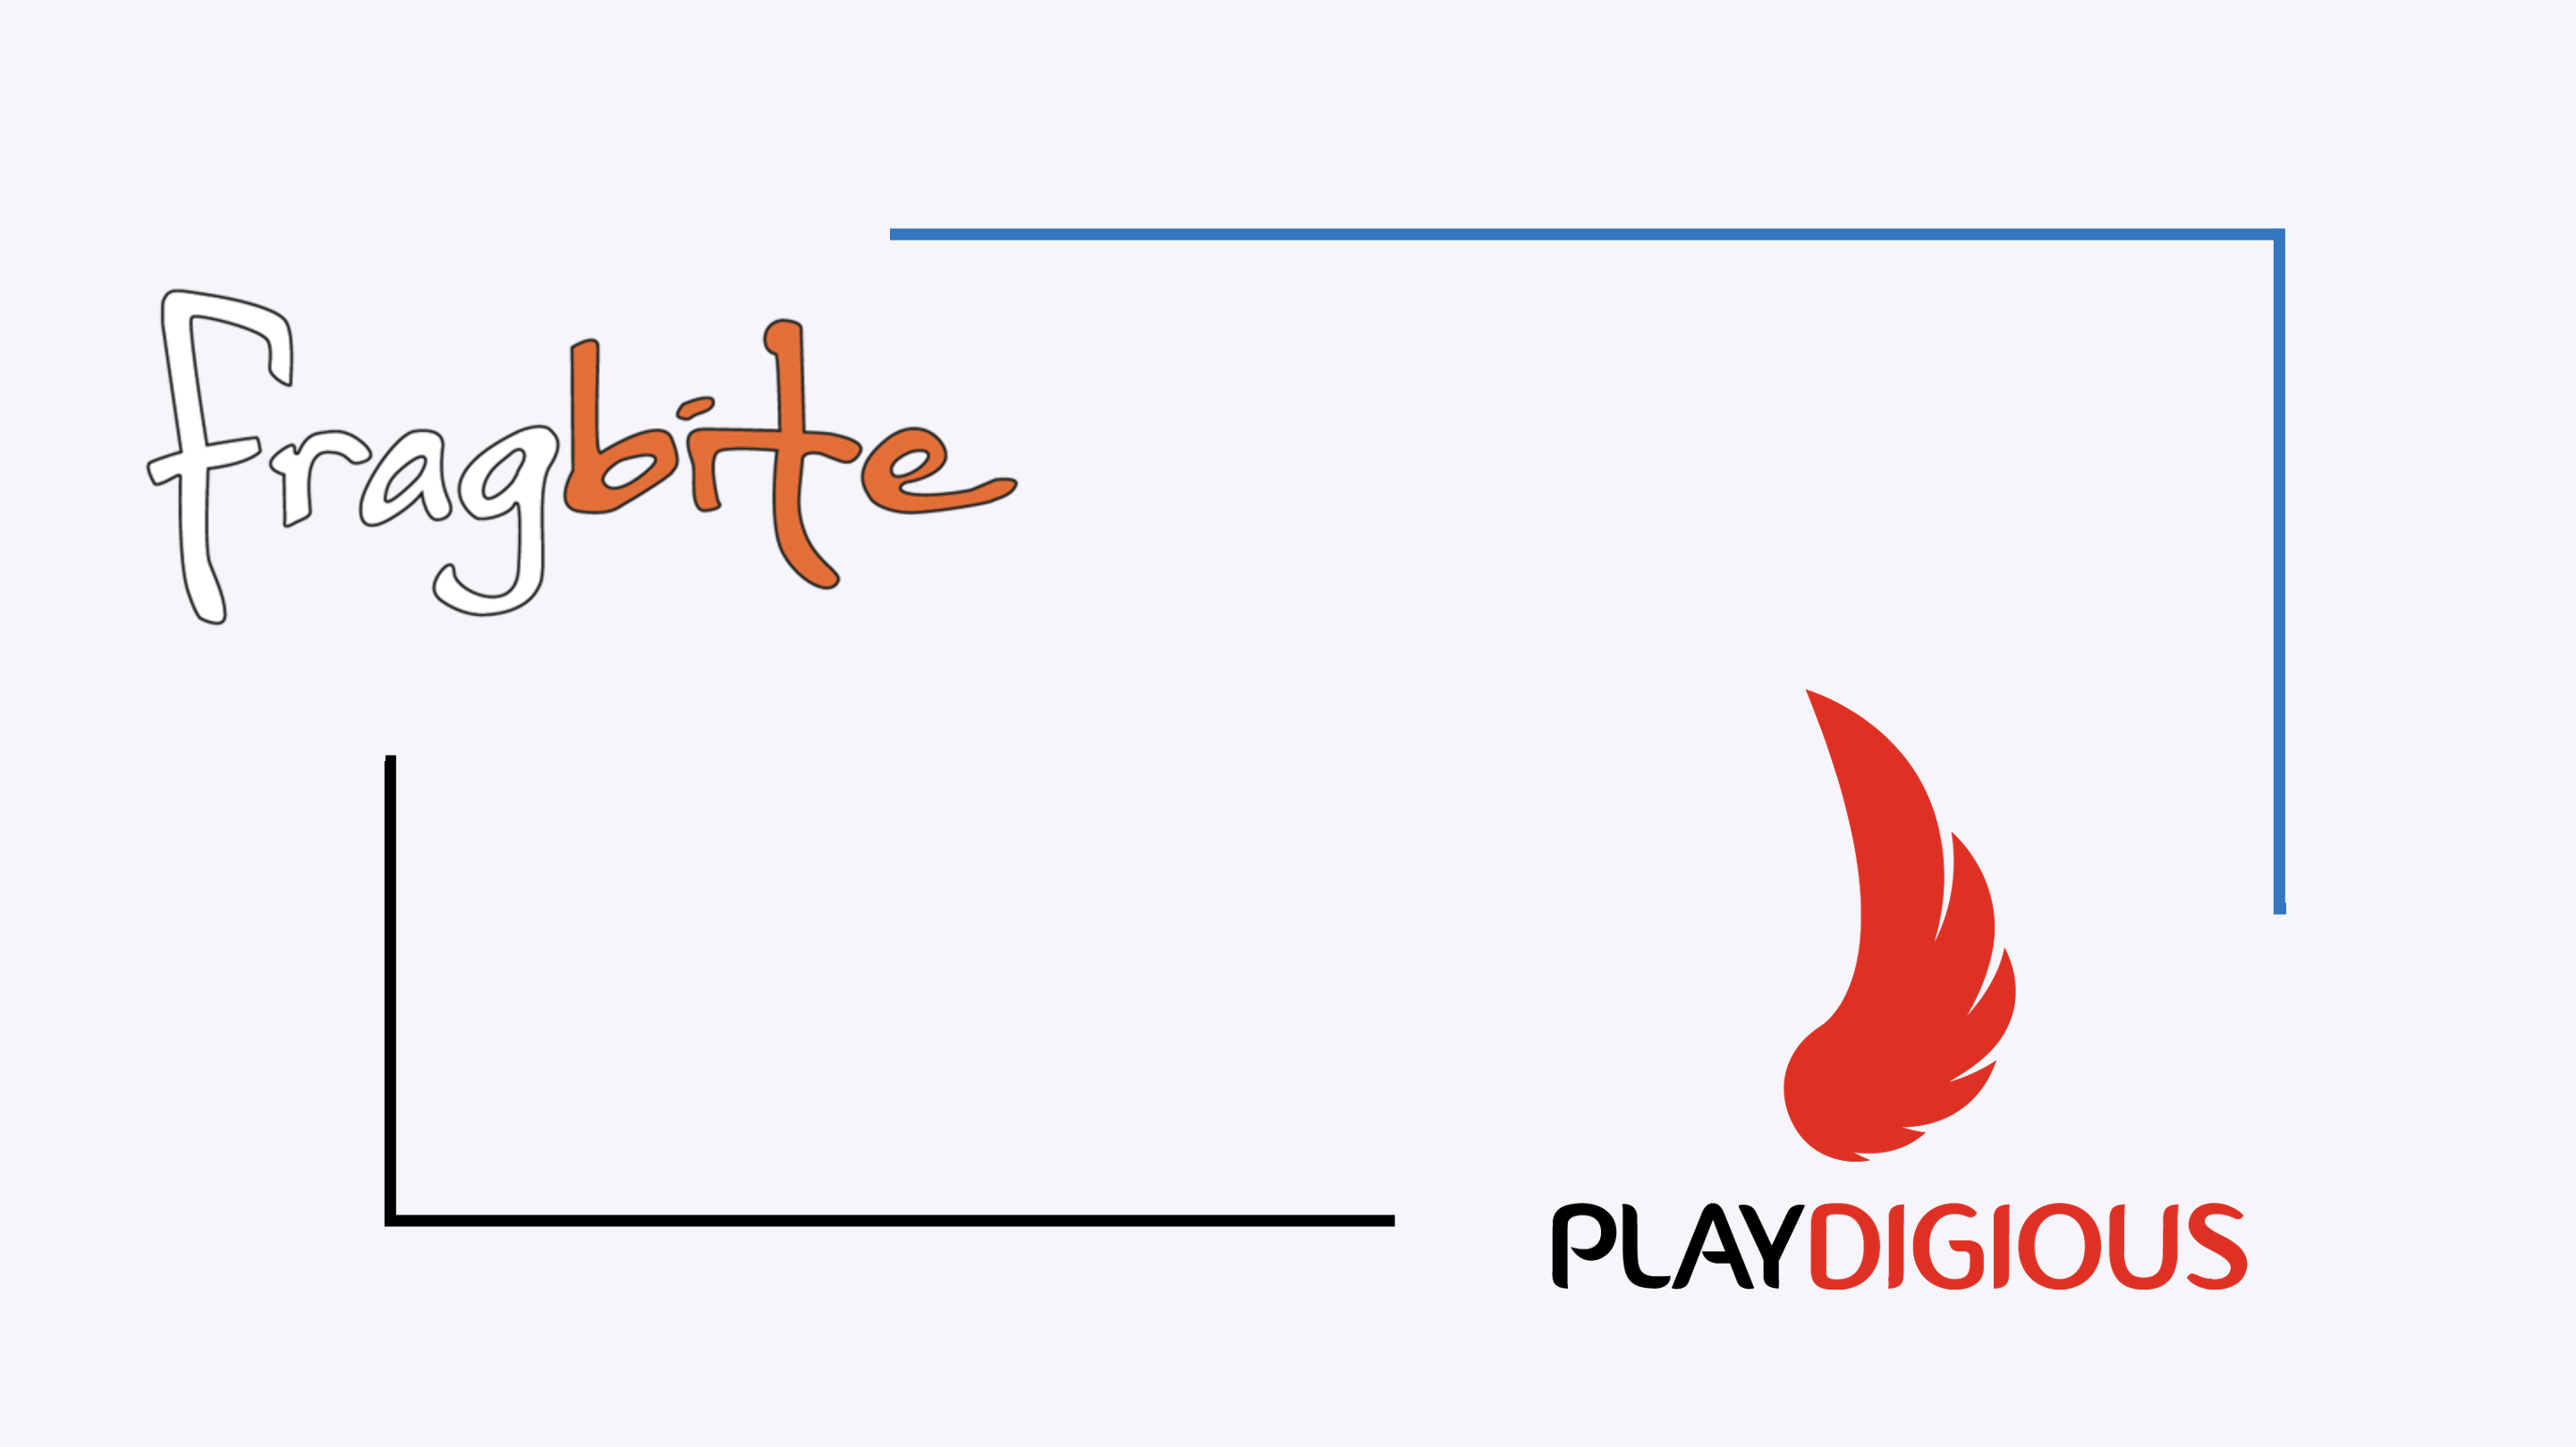 Fragbite Group has acquired Playdigious for $10.4m